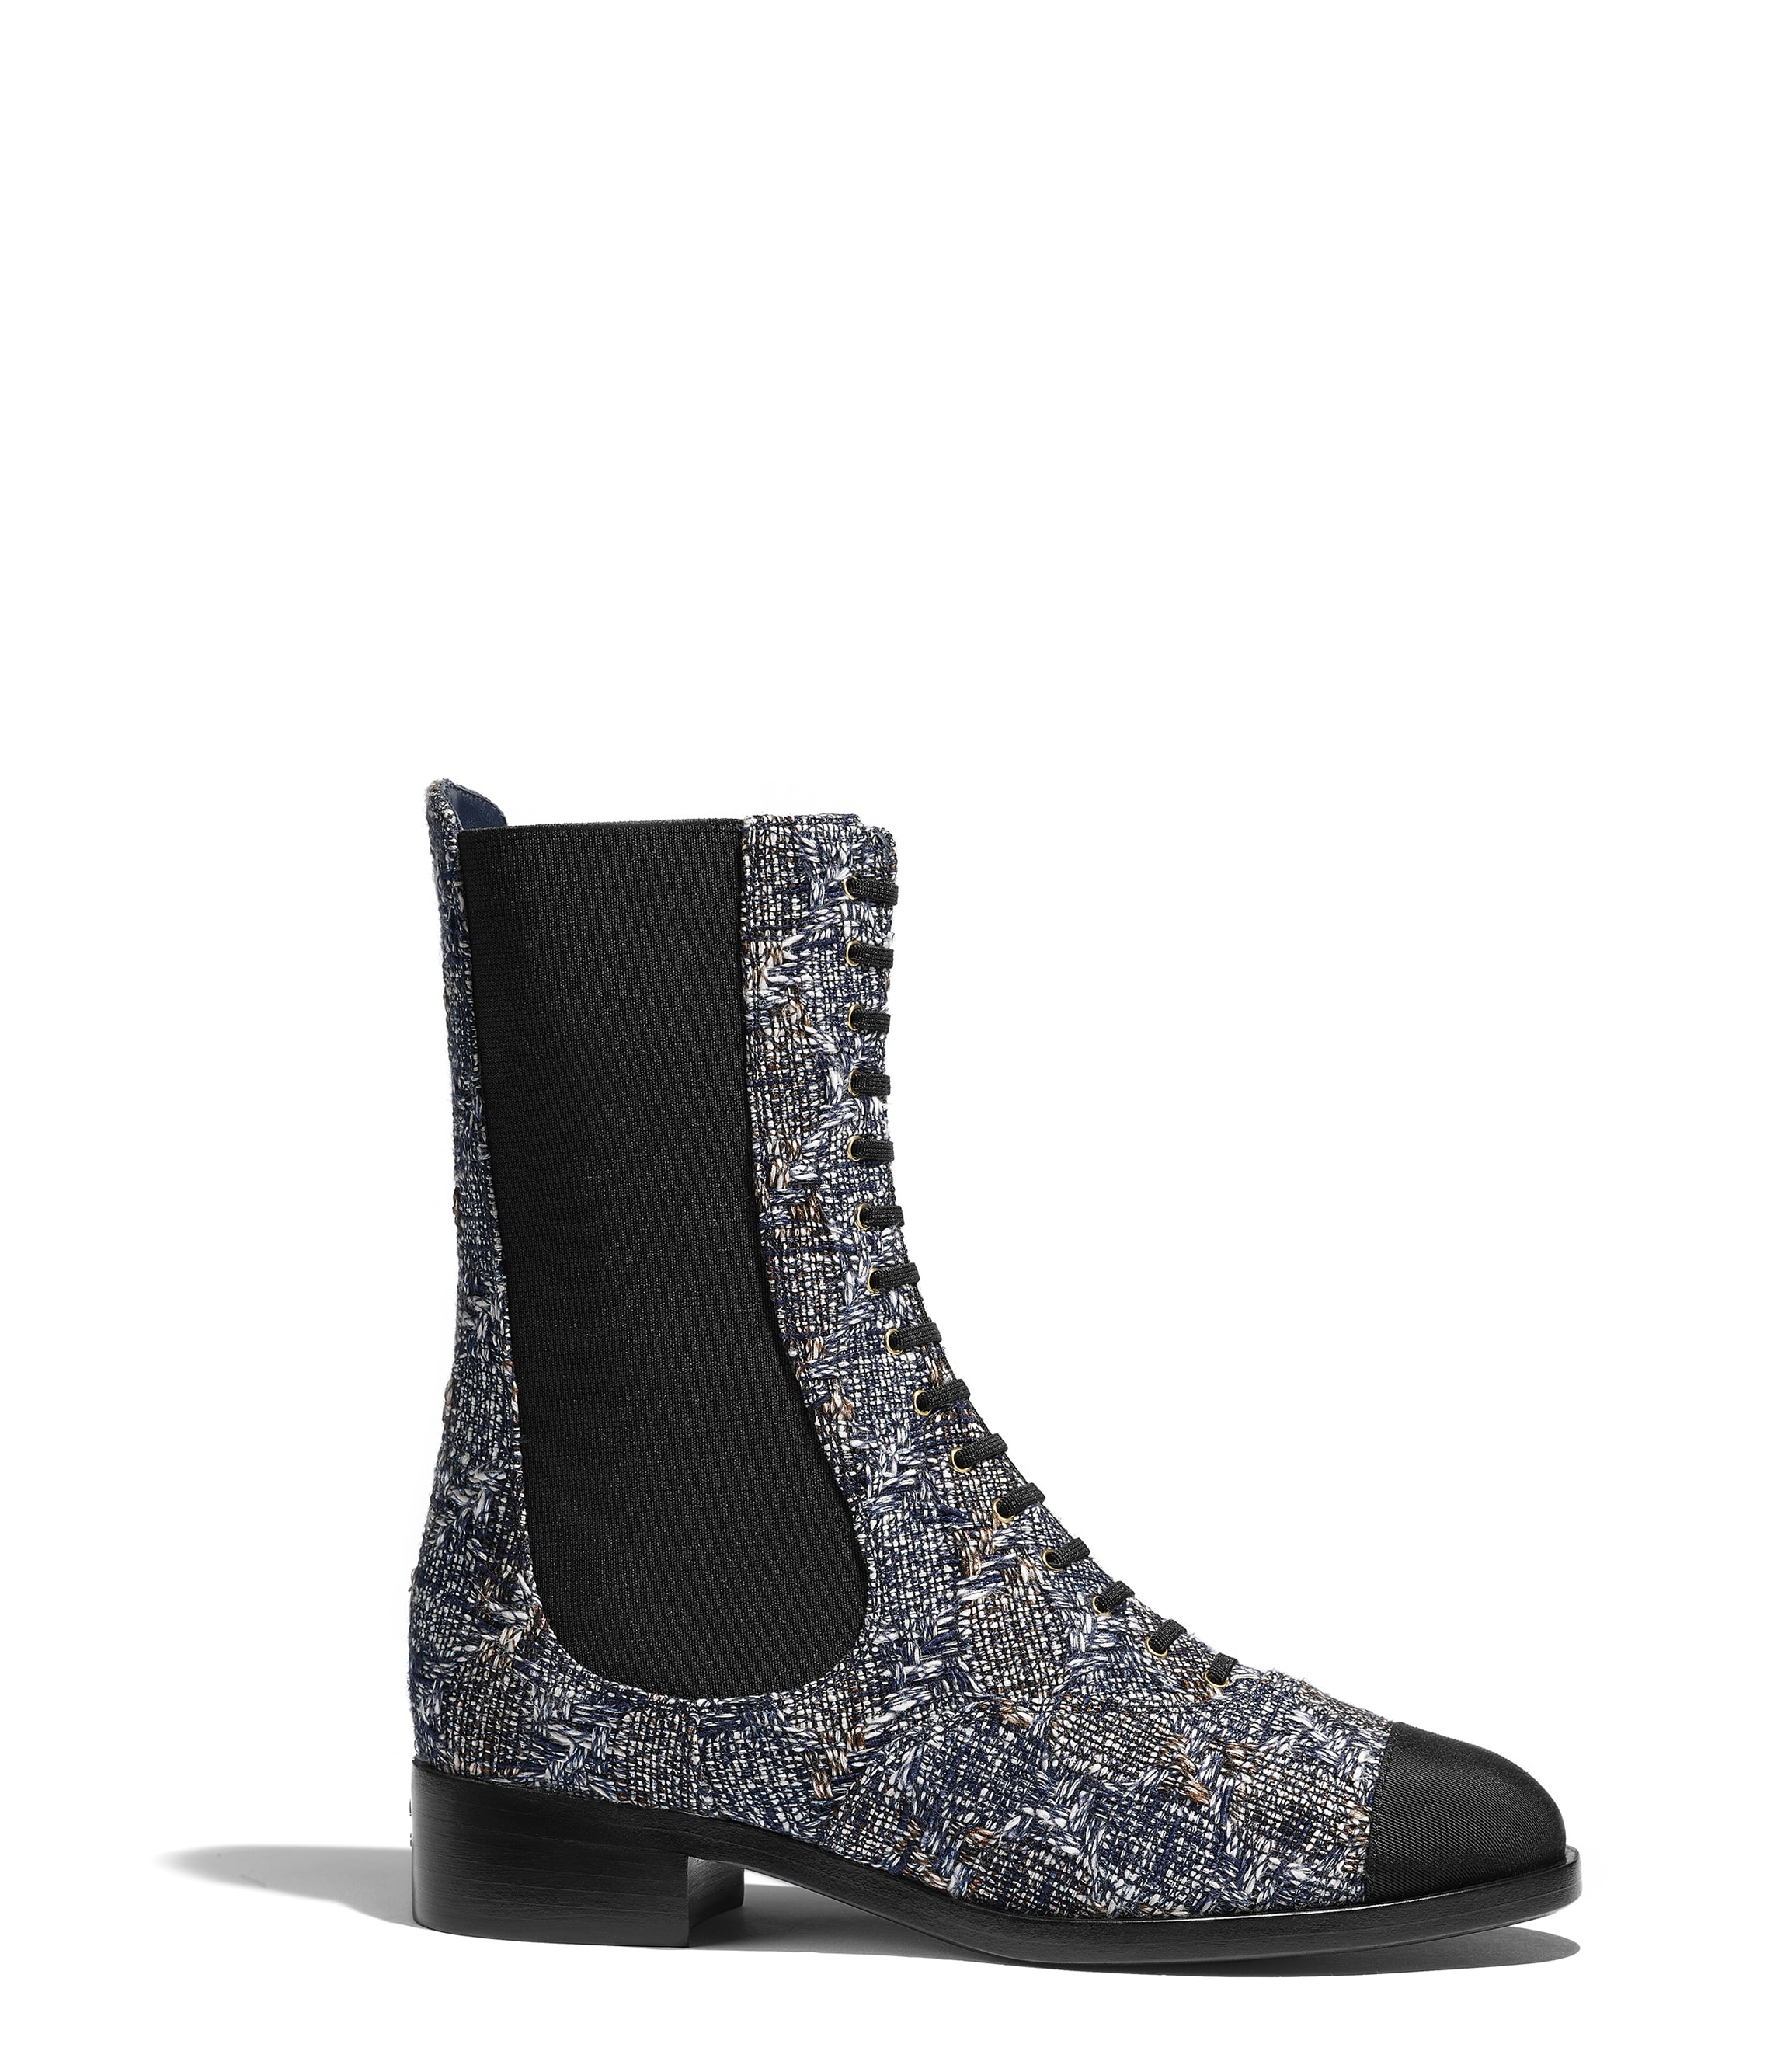 a43315ca0bf Short Boots - Shoes - CHANEL